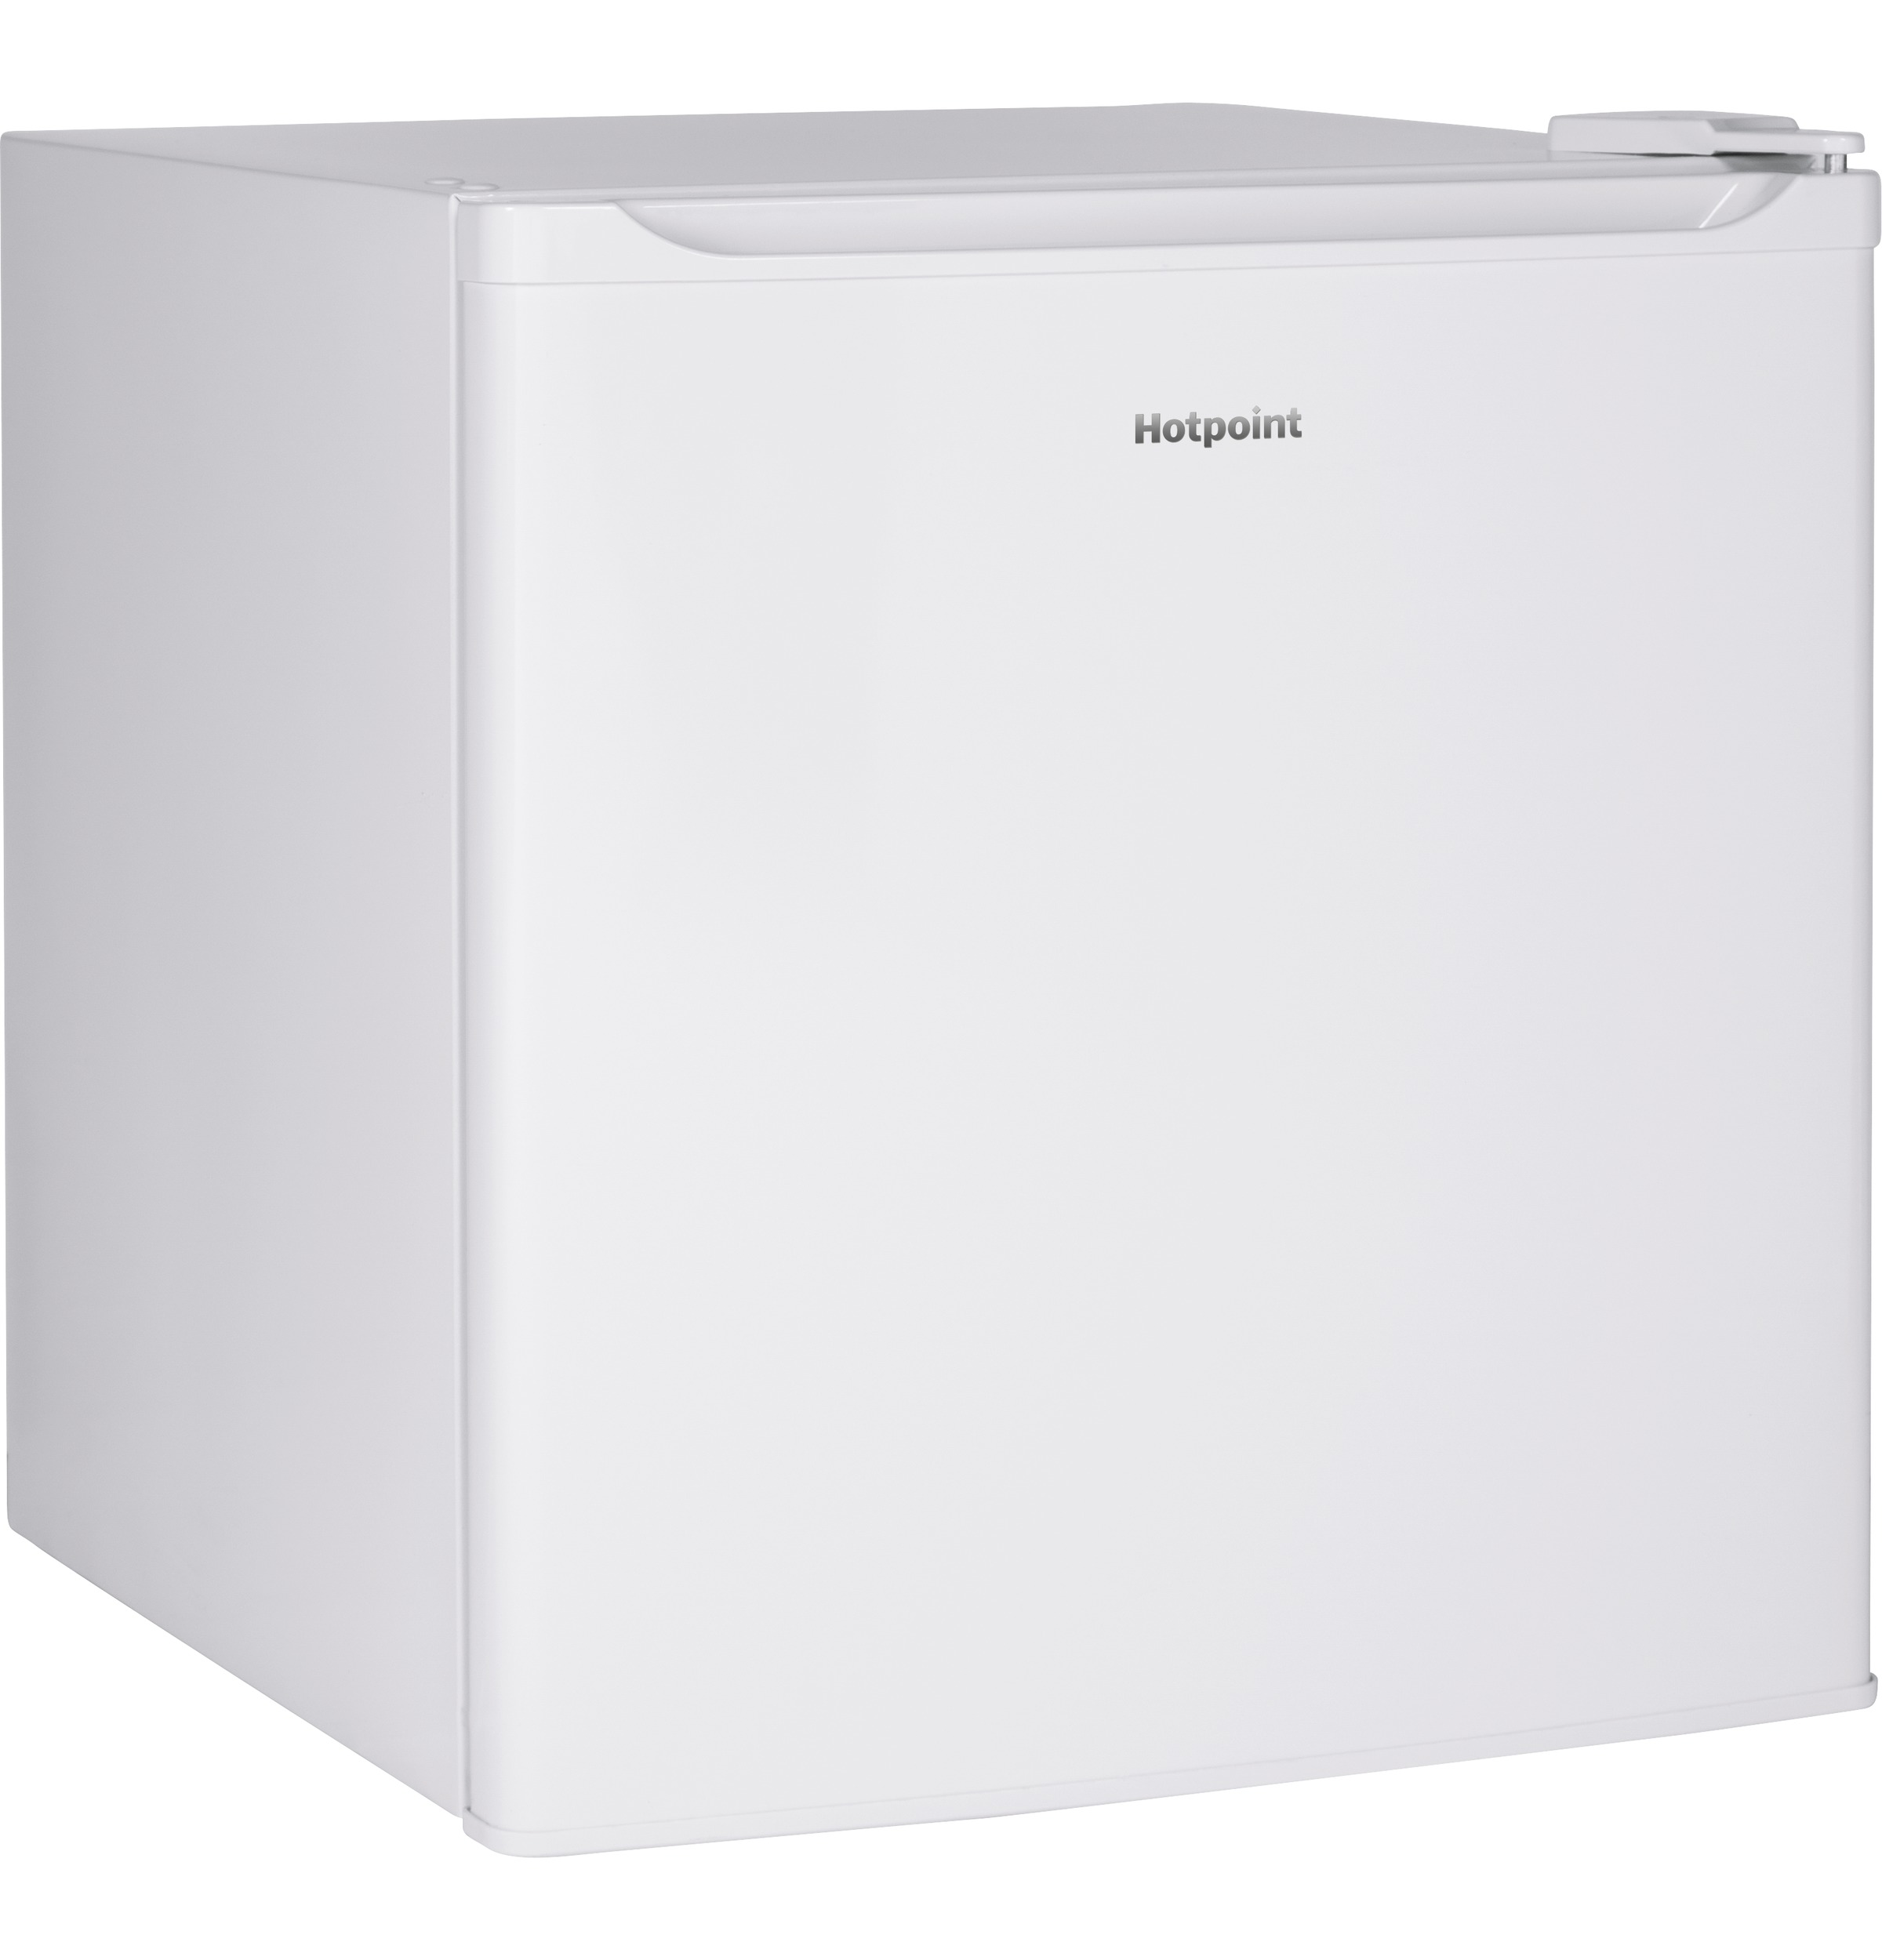 Model: HME02GGMWW | Hotpoint Hotpoint® 1.7 cu. ft. ENERGY STAR® Qualified Compact Refrigerator